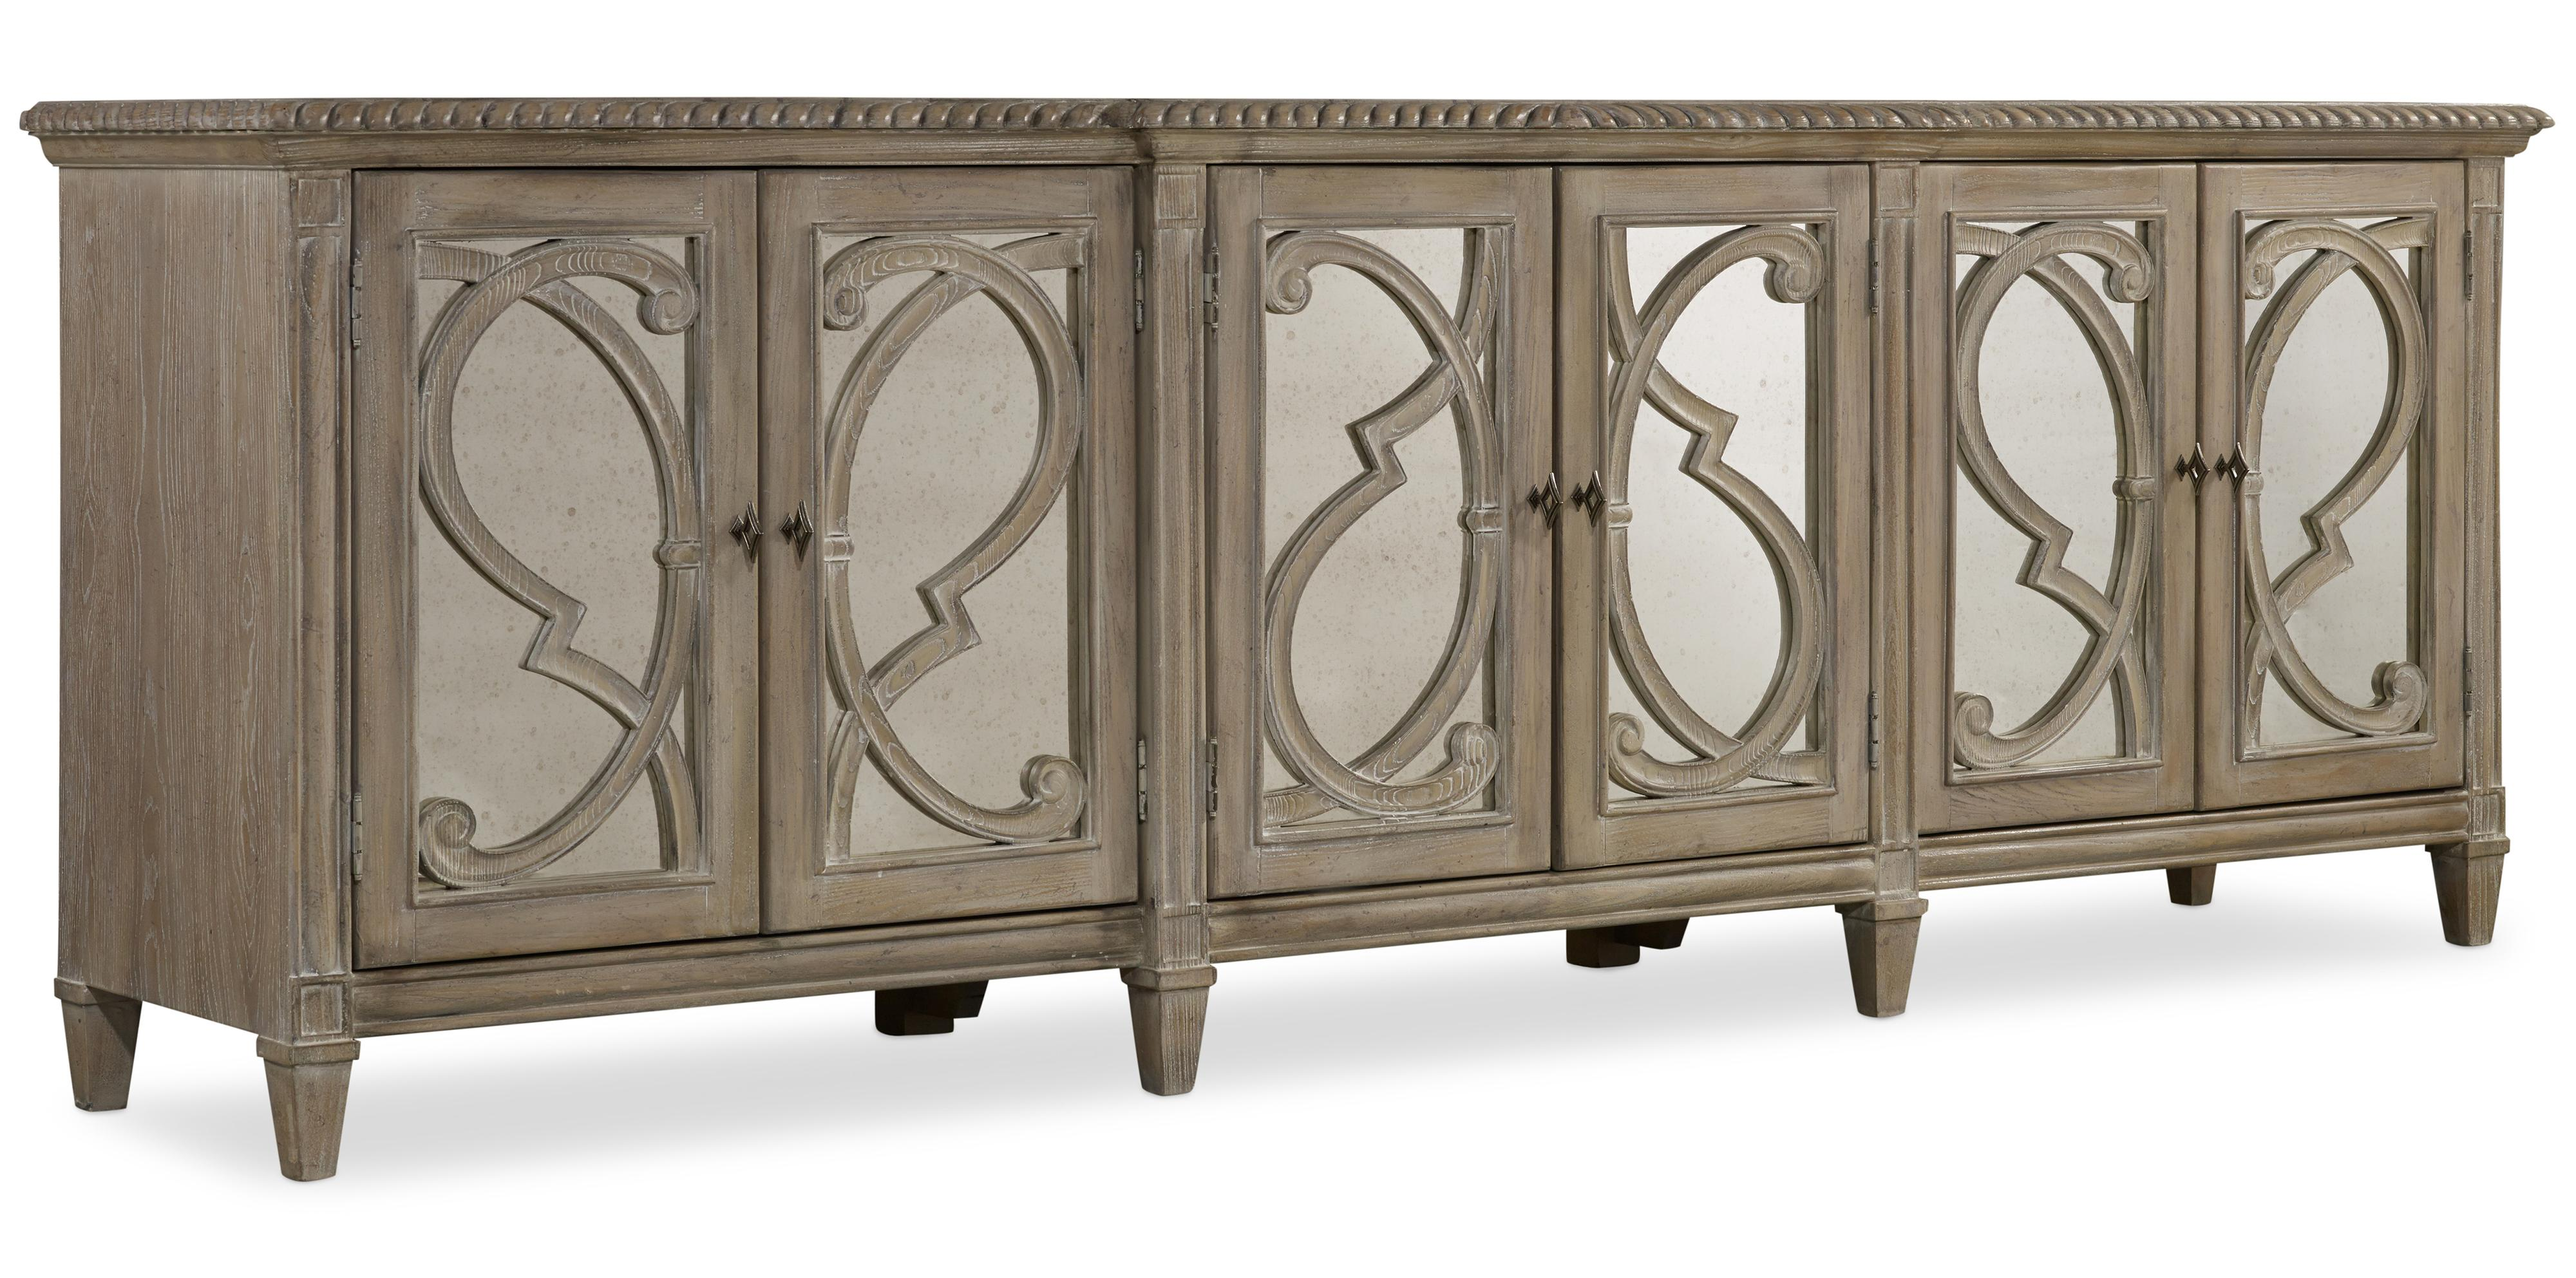 Hooker Furniture Solana 5591 85001 Console With 6 Glass Doors And Decorative Wood Overlay Baer